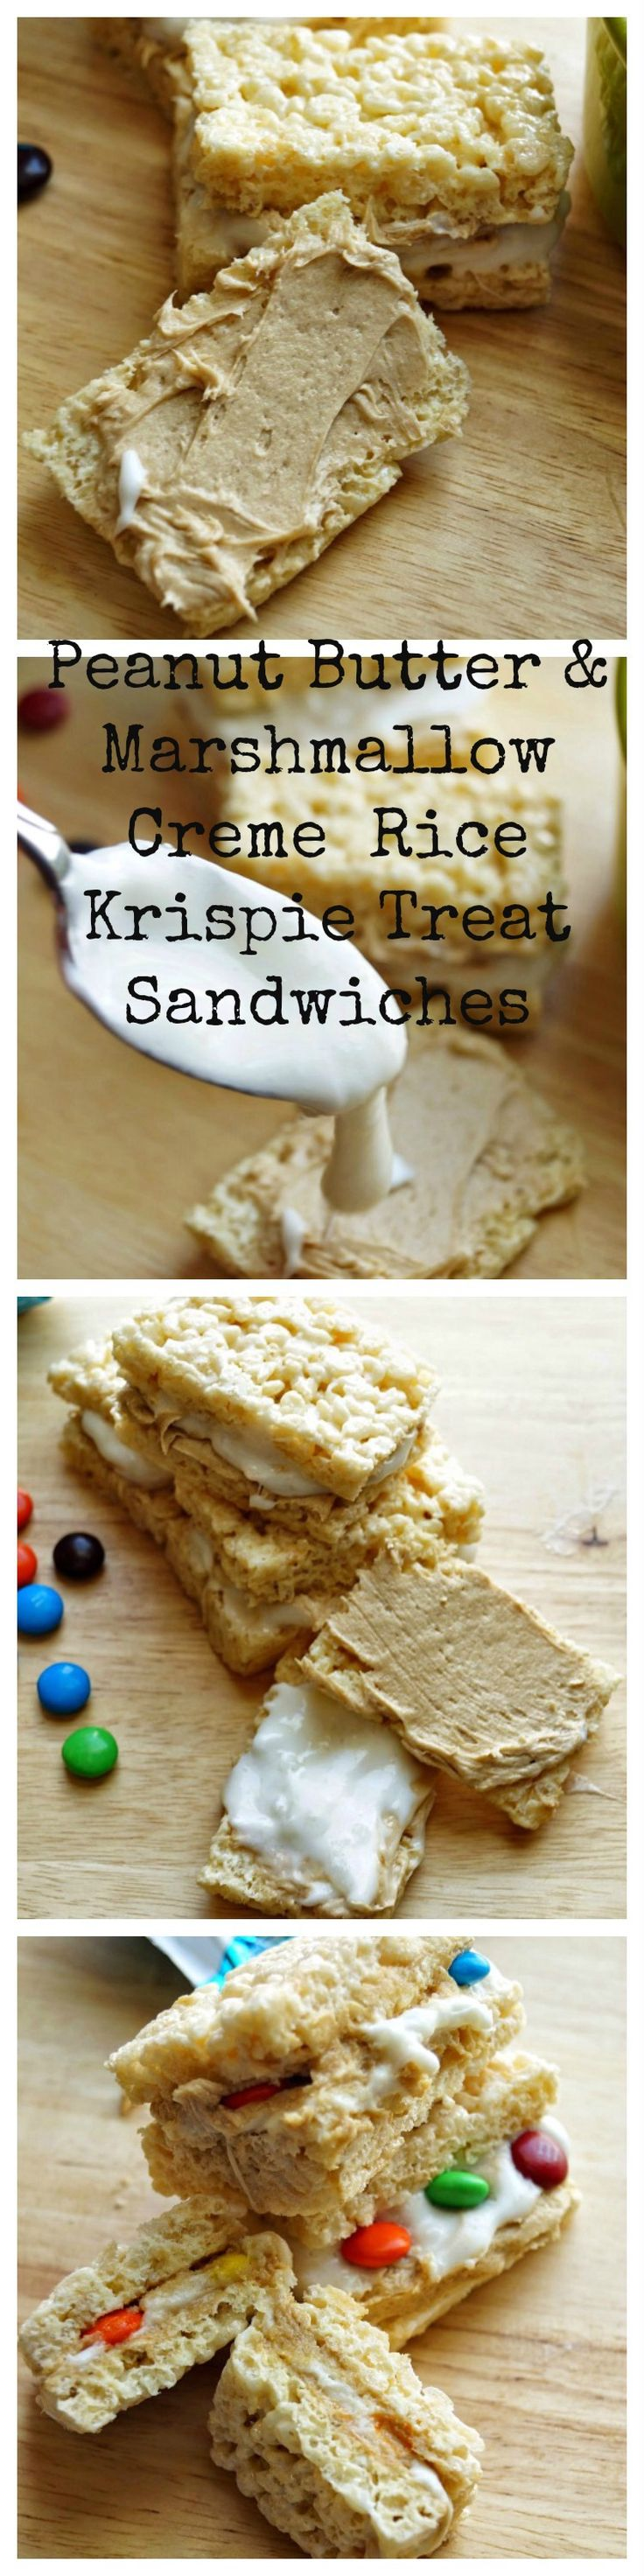 Fluffer Nutter Rice Krispie Treat sandwiches! Peanut butter and homemade marshmallow Creme made in the microwave! #ad #kreatemyhappy